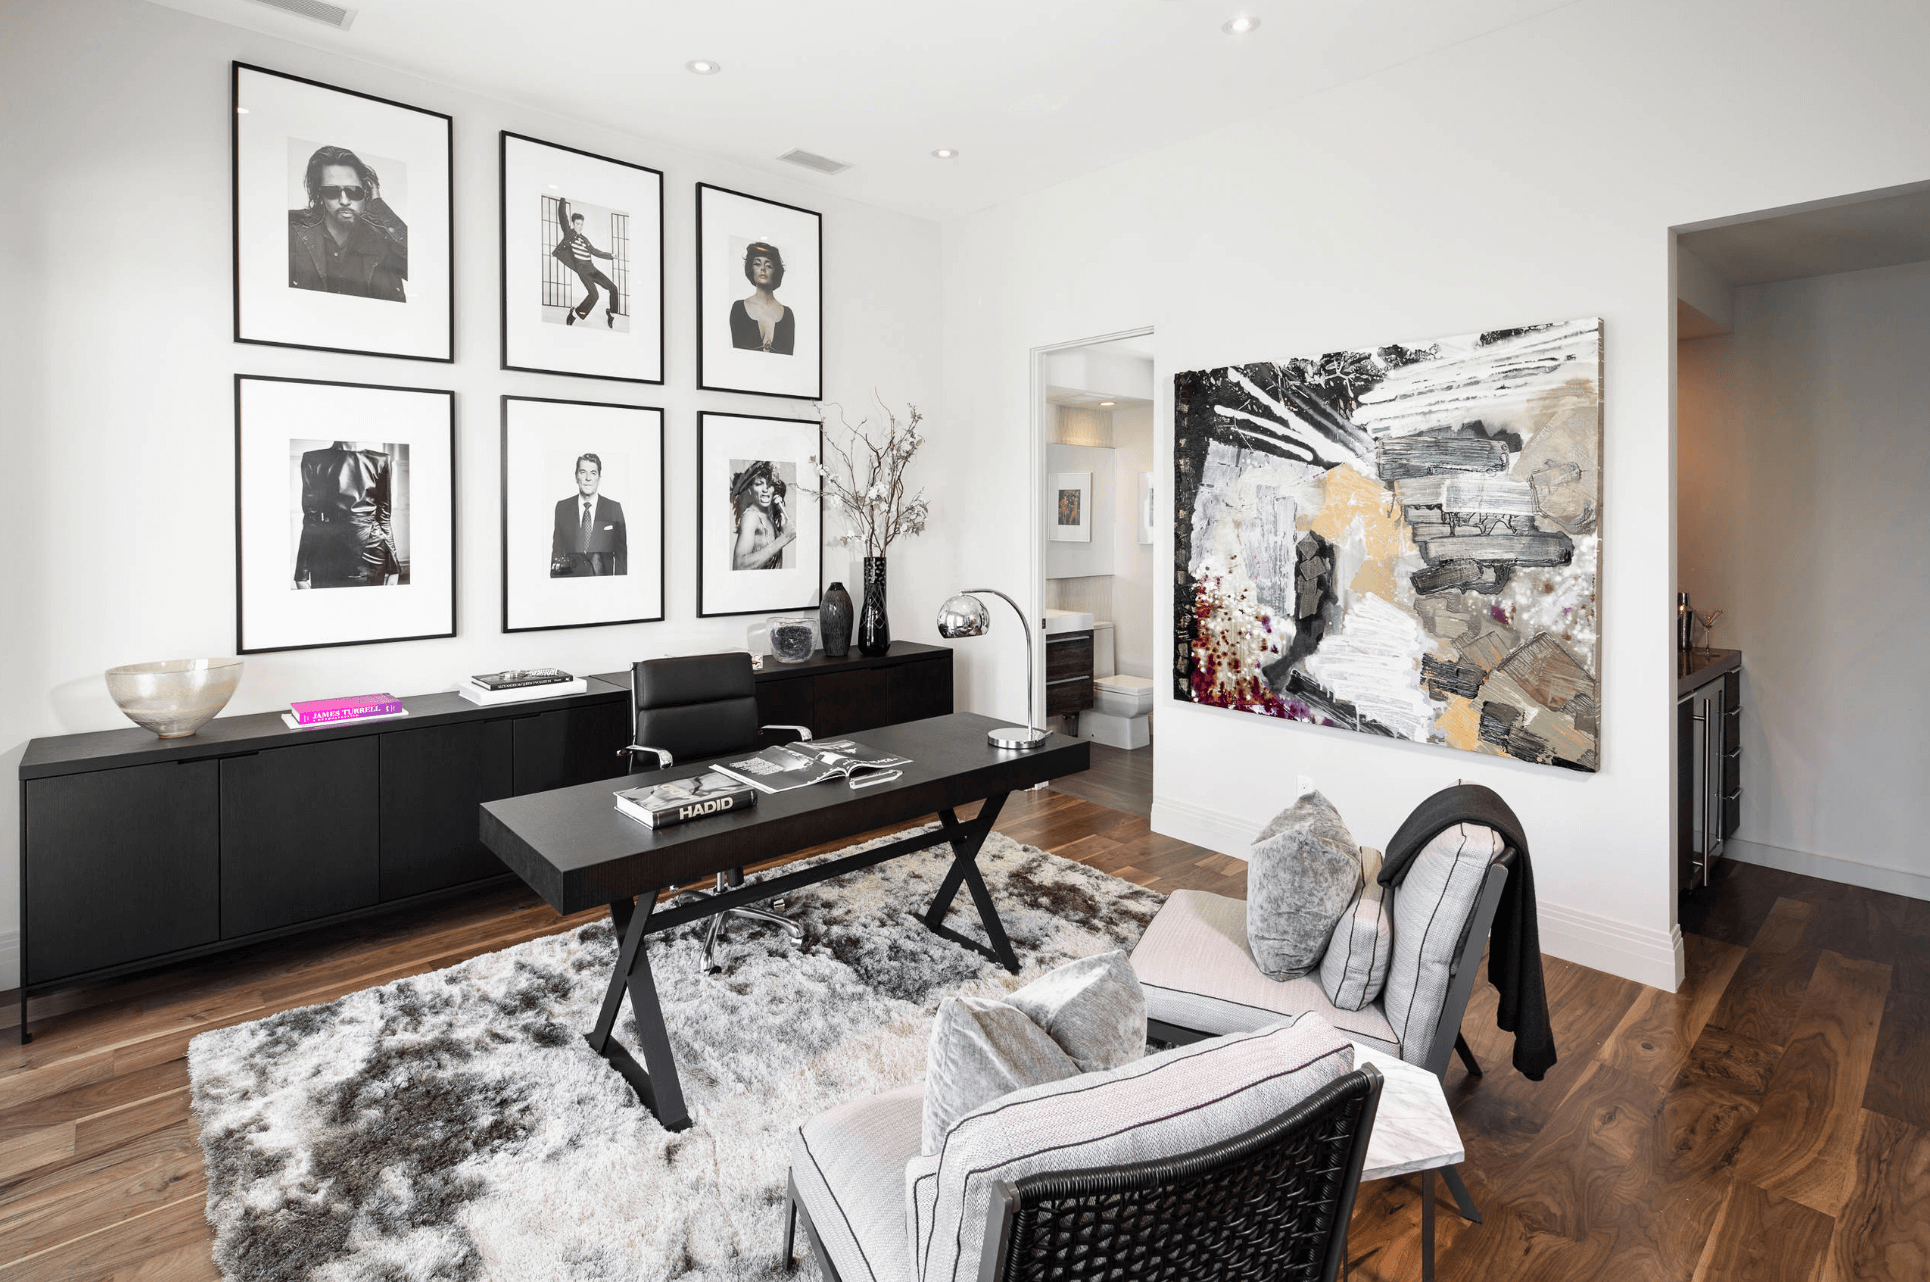 An artistic home office interior in black and white with artwork on the wall